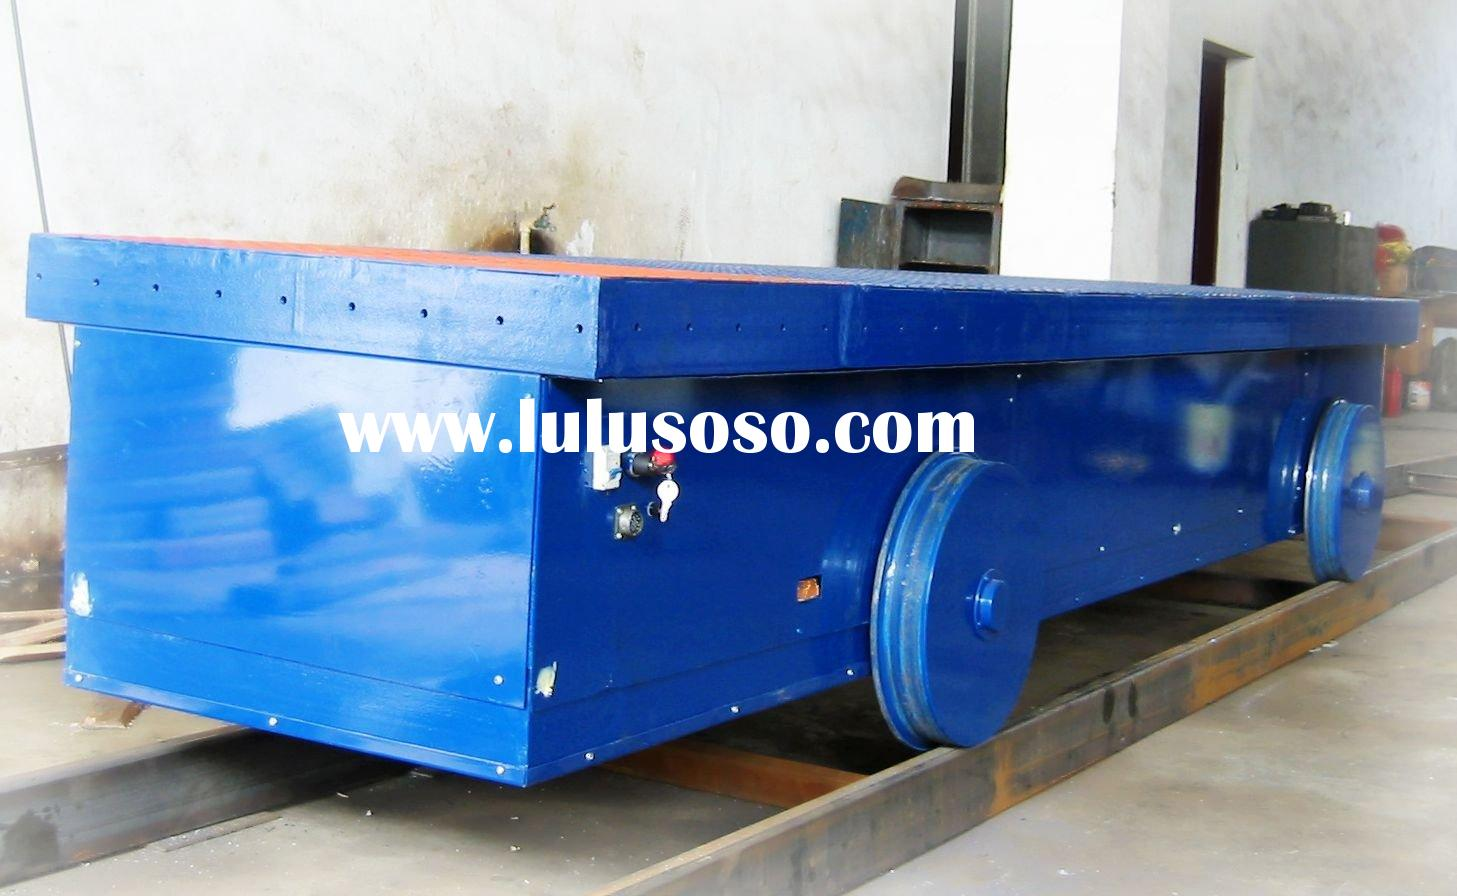 professional manufacturer of hydraulic lifting equipment